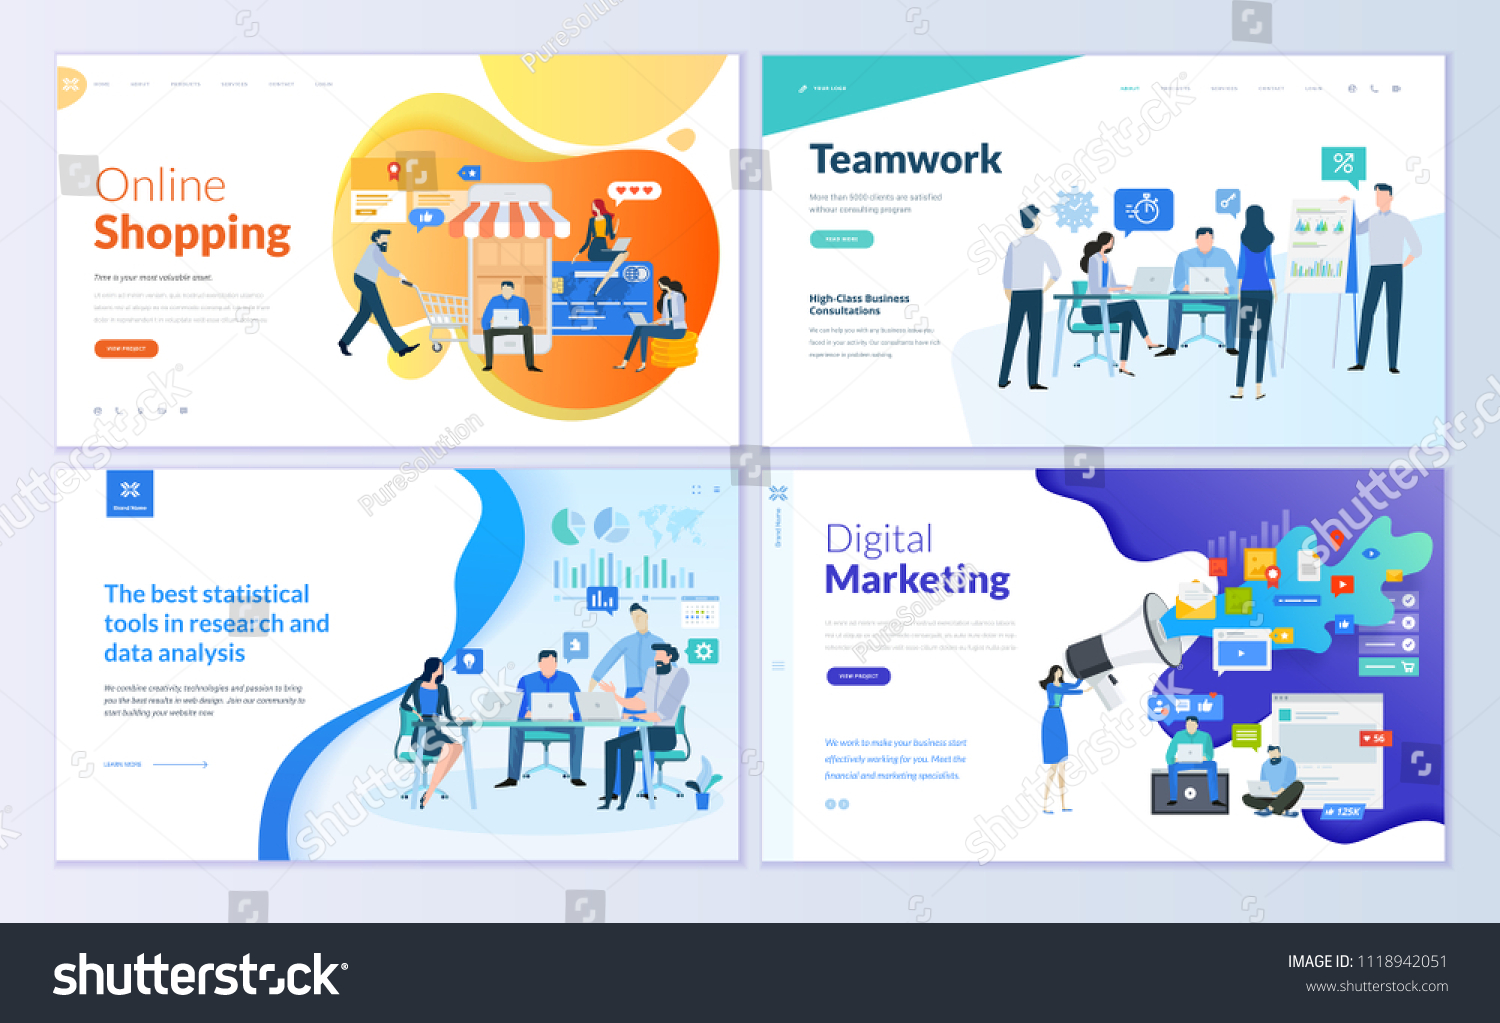 Set of web page design templates for online shopping, digital marketing, teamwork, business strategy and analytics. Modern vector illustration concepts for website and mobile website development.